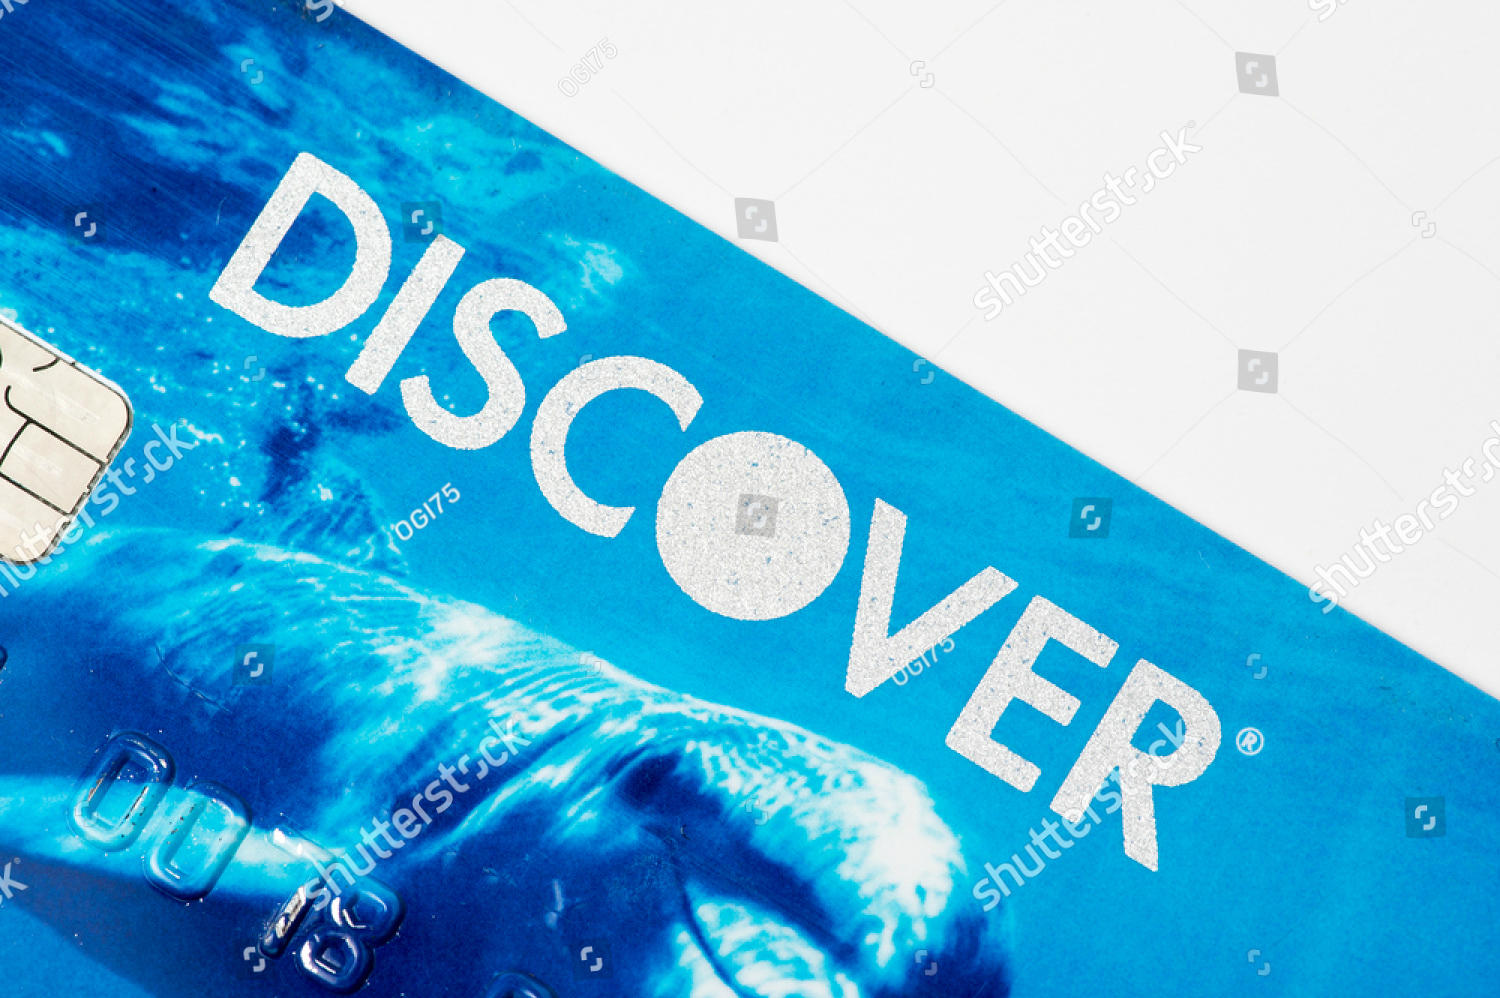 Discover Credit Card Designs Inspirational 8 Discover Card Designs